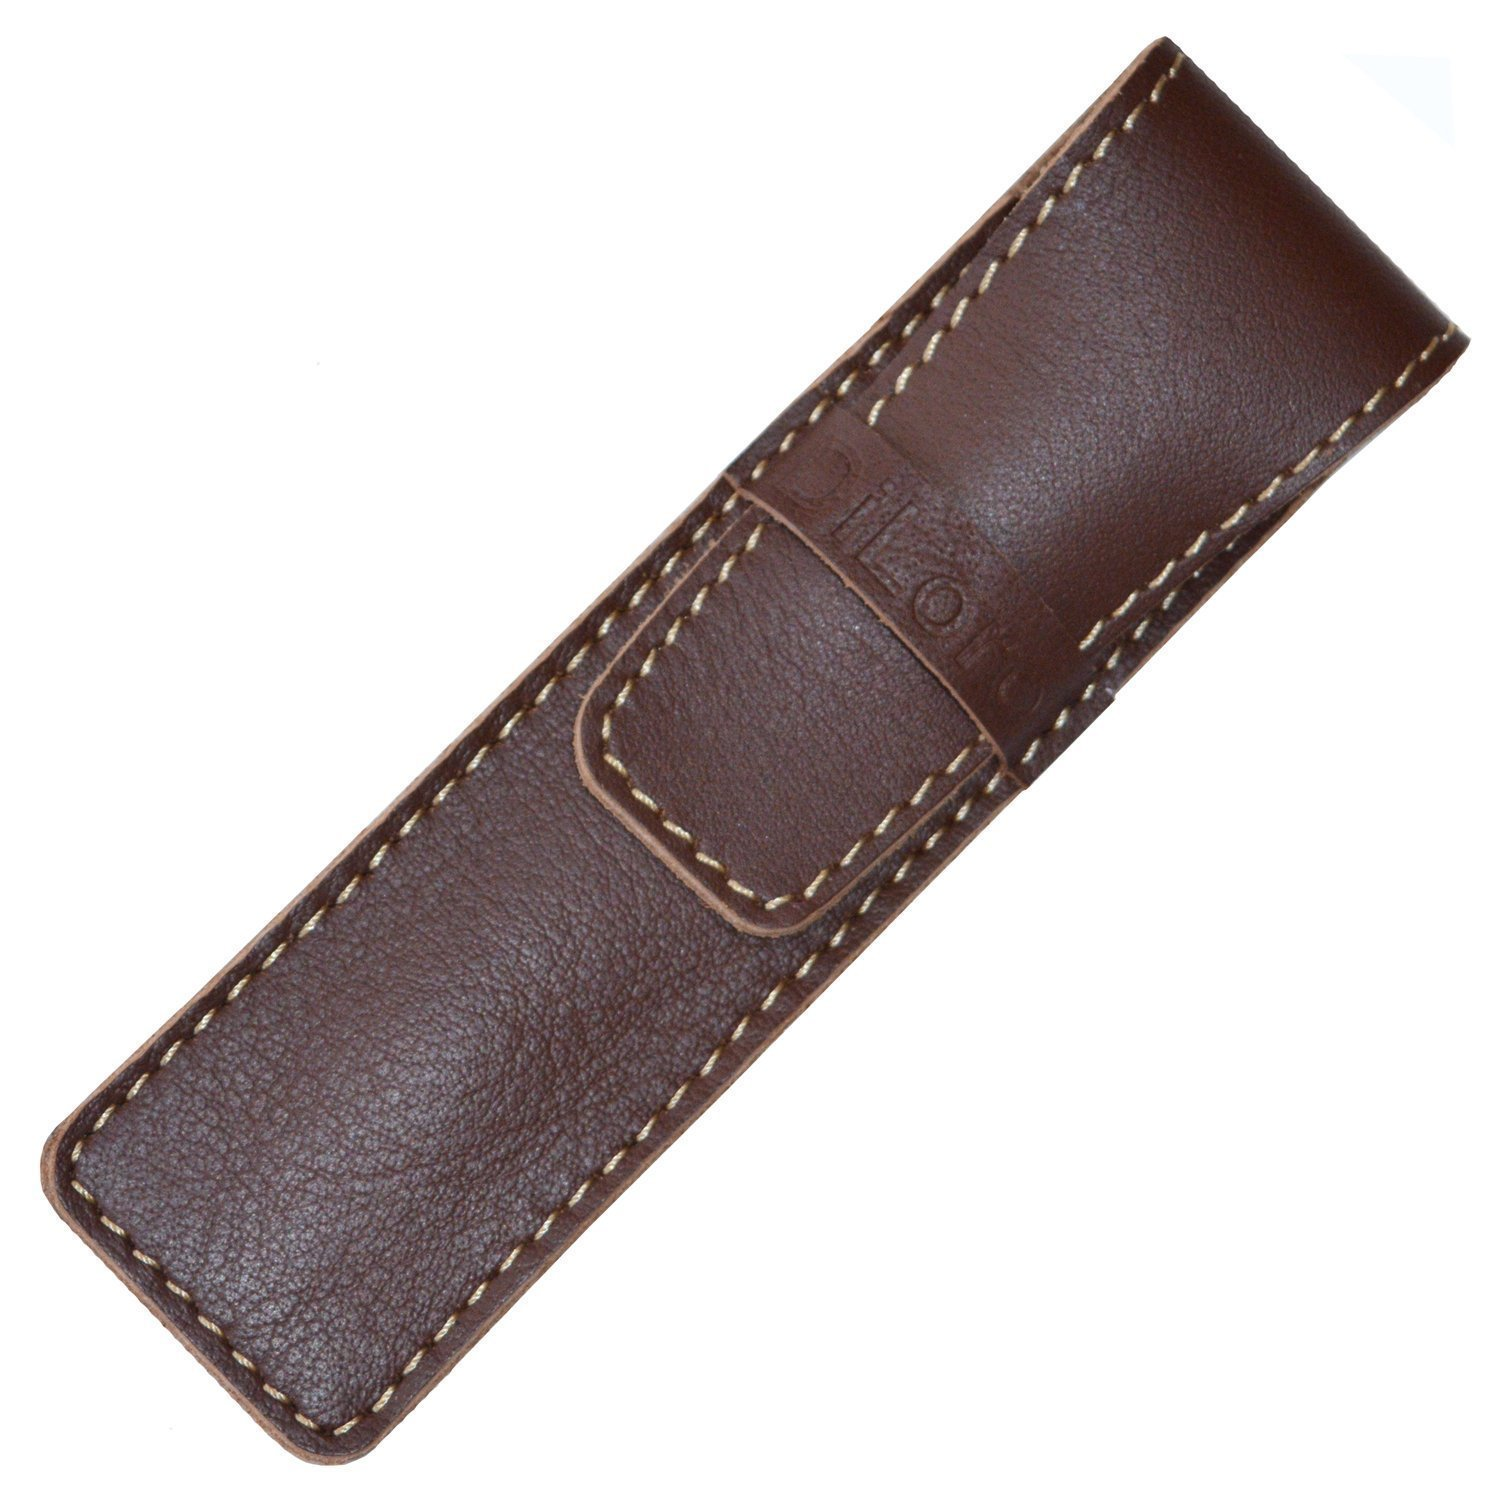 DiLoro Full Grain Top Quality Thick Buffalo Leather Single Pen Case Holder Pouch Brown